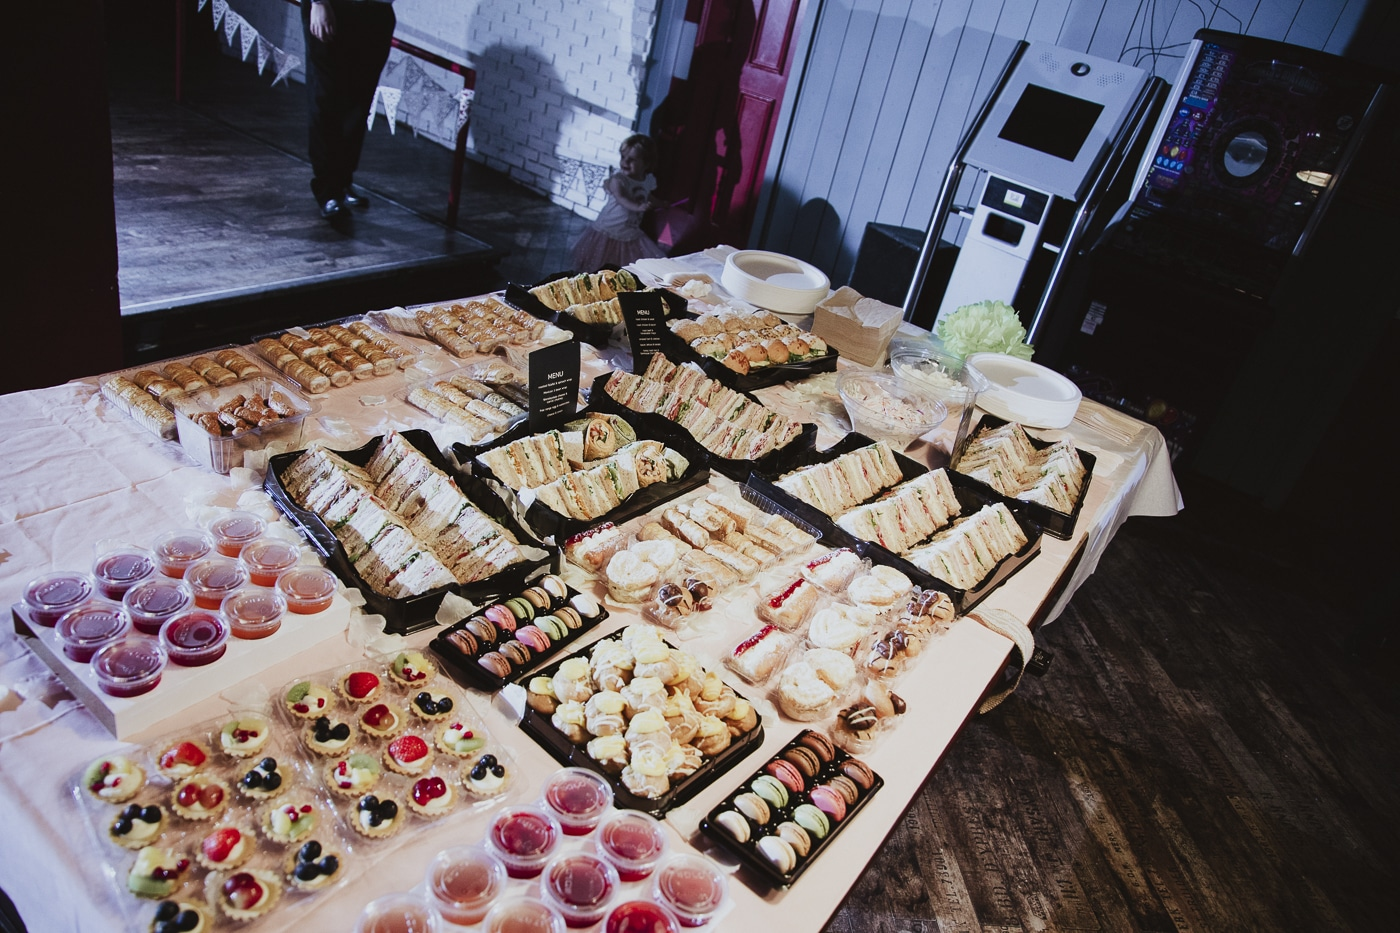 Food served at wedding by Joshua Wyborn Photographic